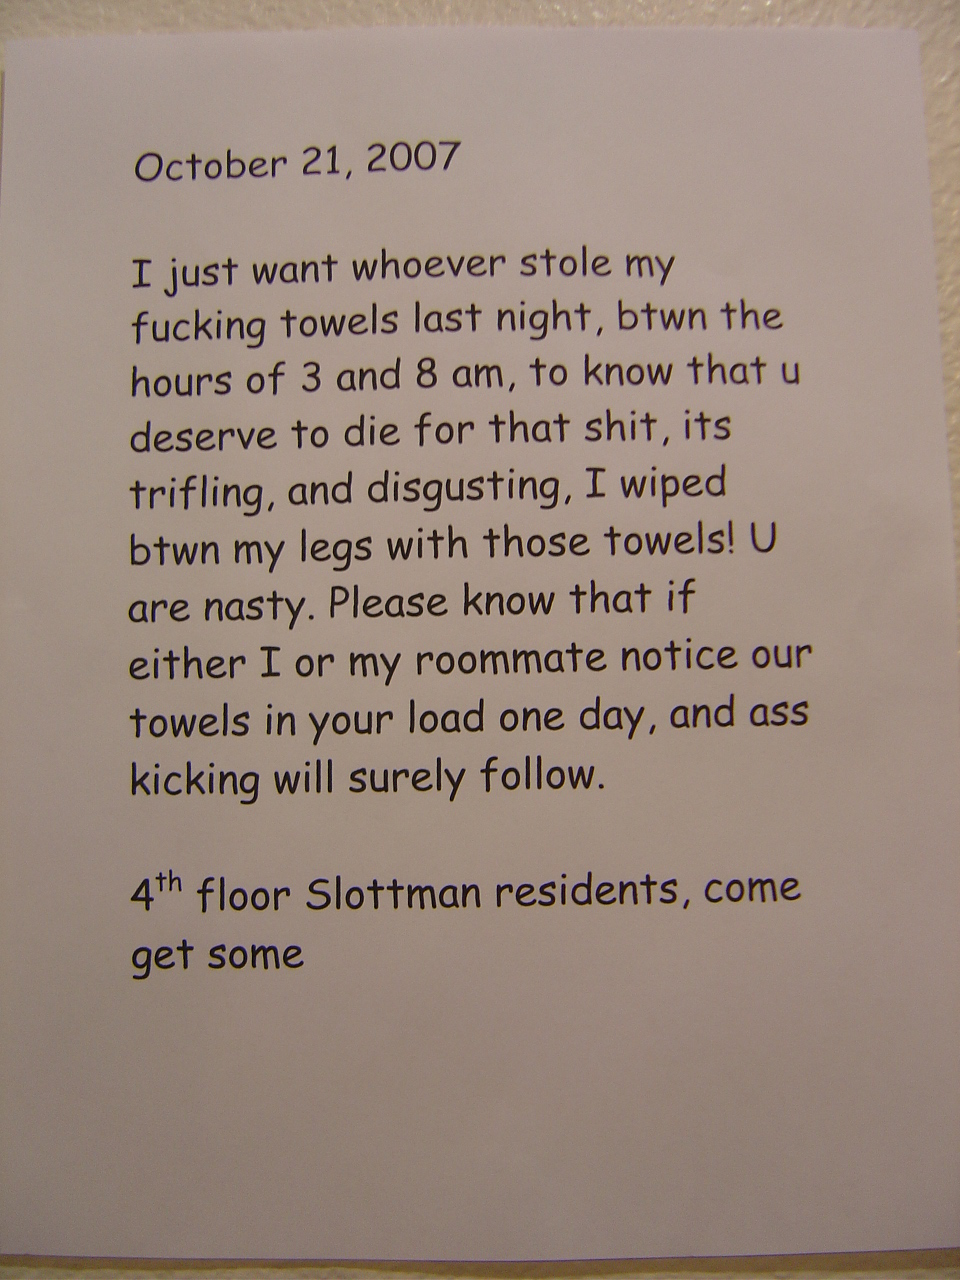 I just want whoever stole my fucking towels last night, btwn the hours of 3 and 8 am, to know that u deserve to die for that shit, its [sic] trifling, and disgusting. I wiped btwn my legs with those towels! U are nasty. Please know that if either I or my roommate notice our towels in your load one day, and [sic] ass kicking will surely follow. 4th floor Slottman residents, come get some.